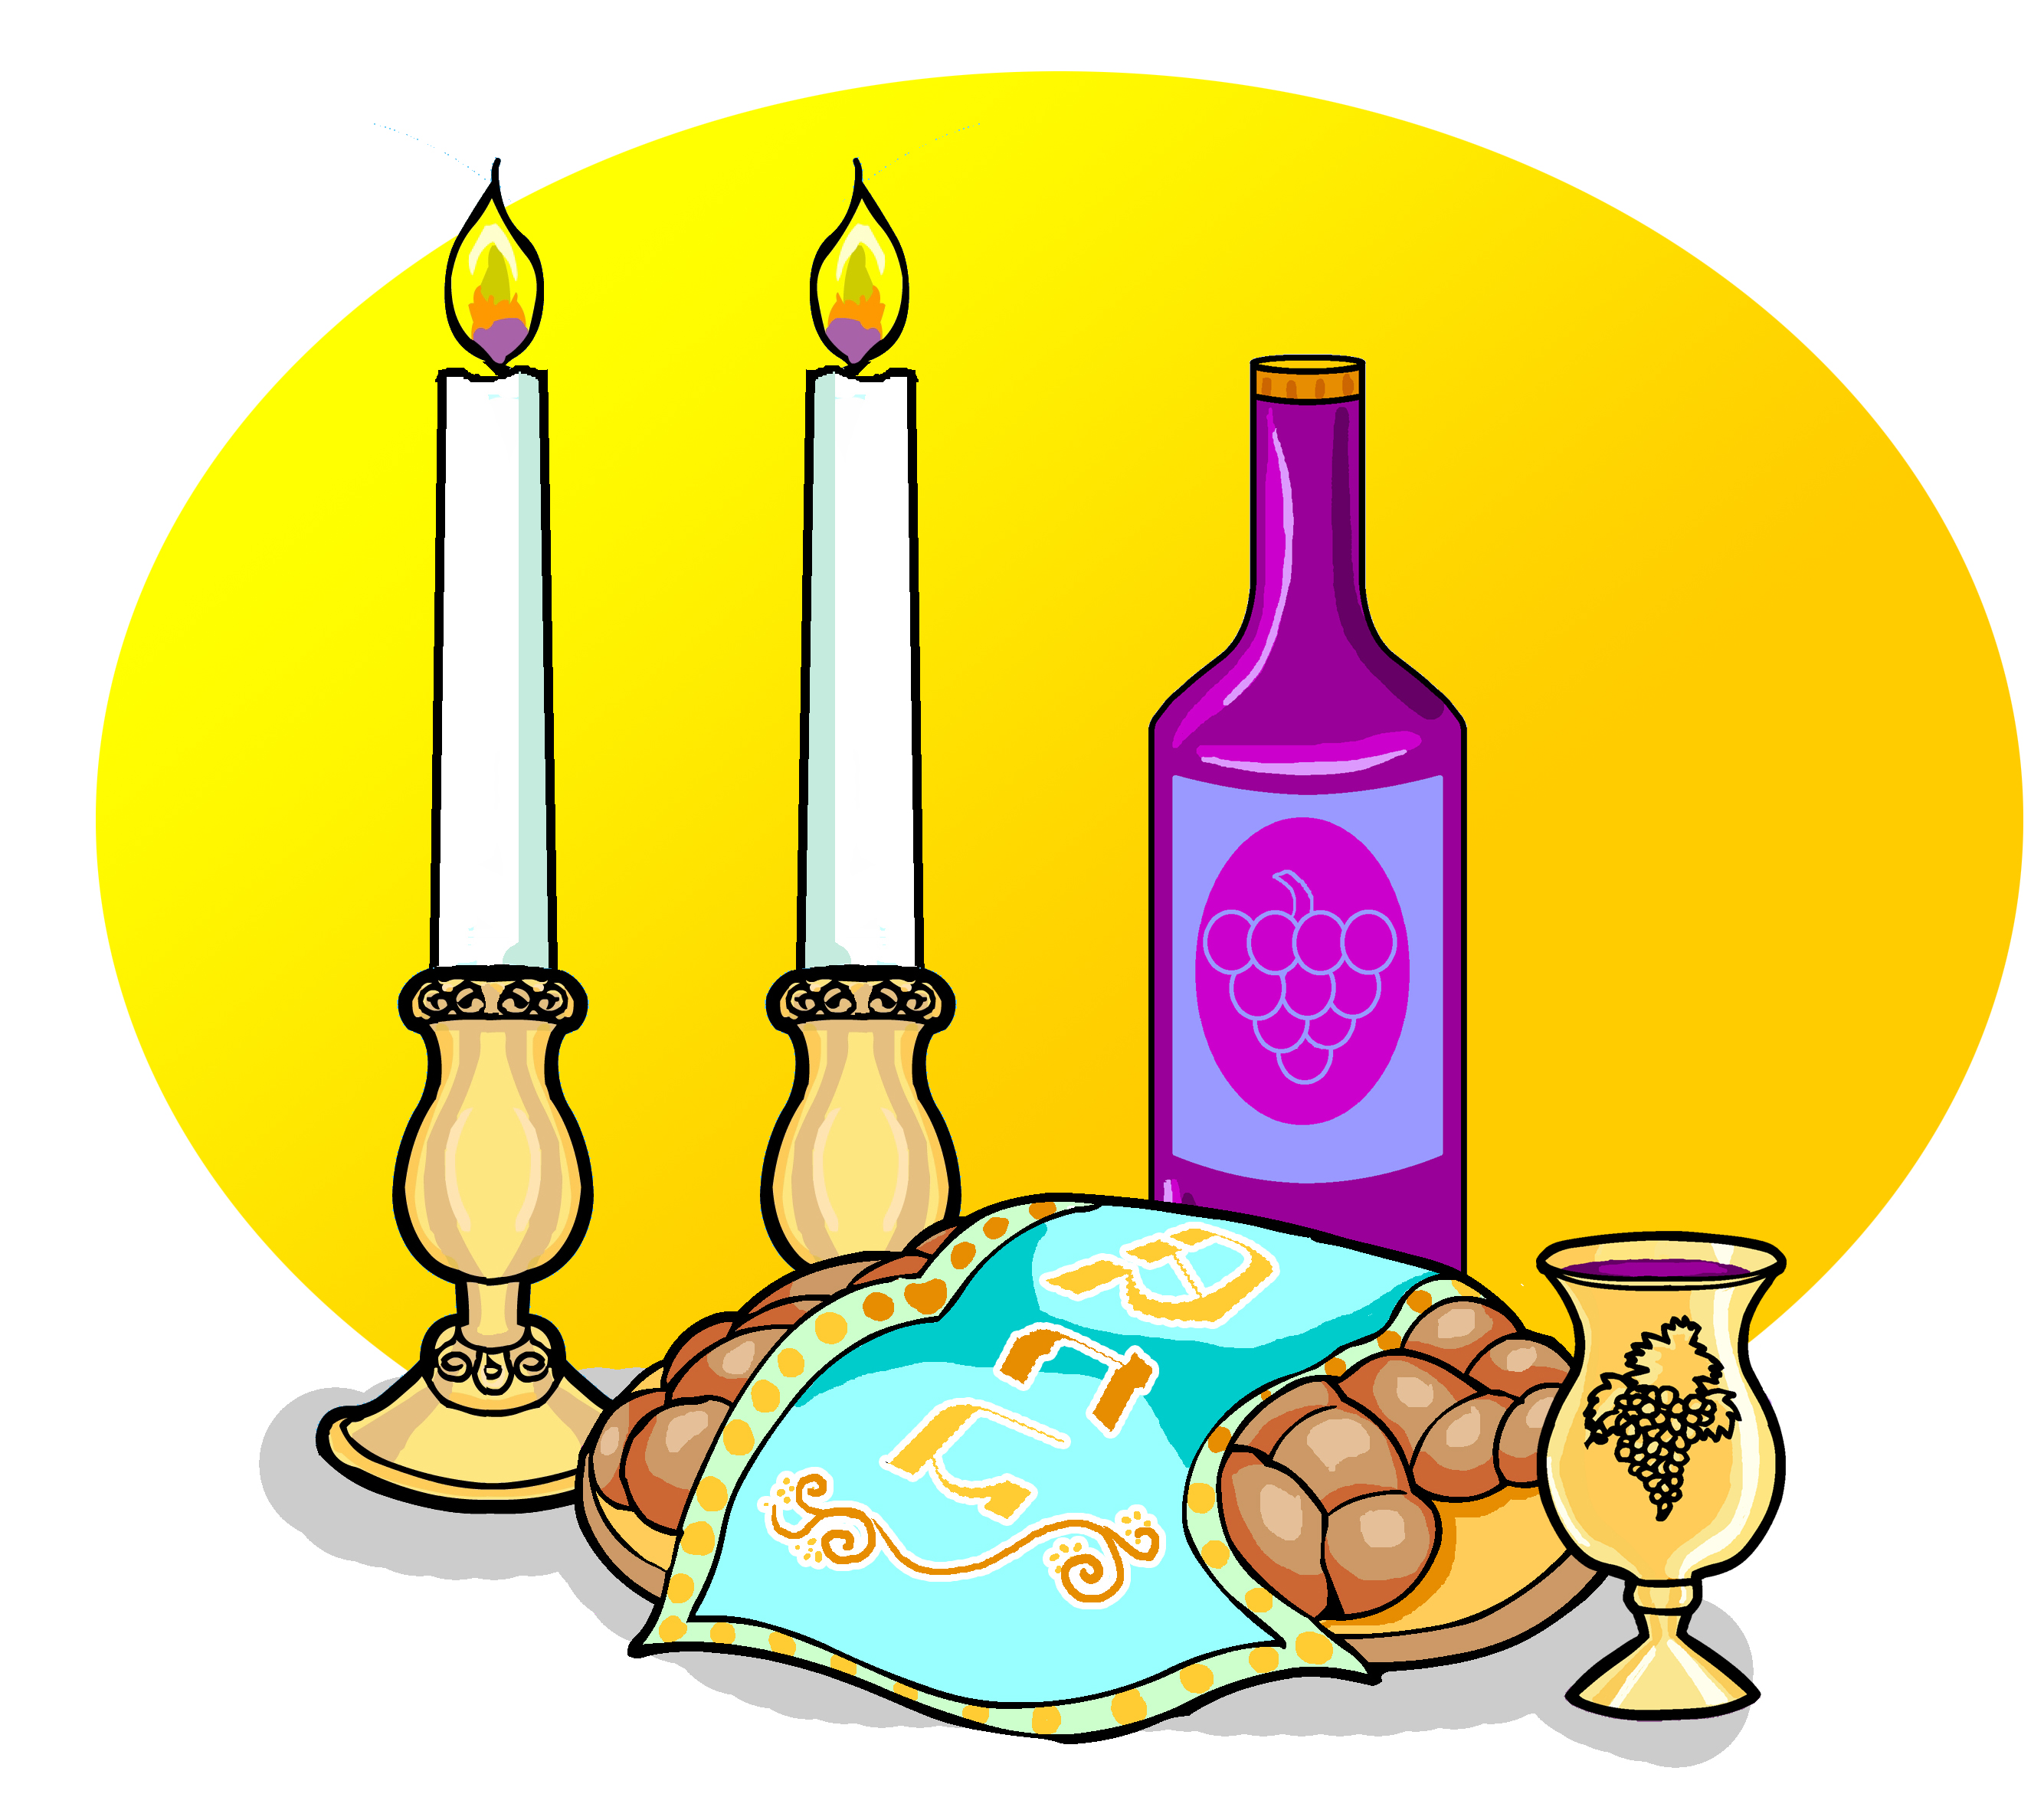 Shabbat Candles Clipart Shabbat - 1730.7KB